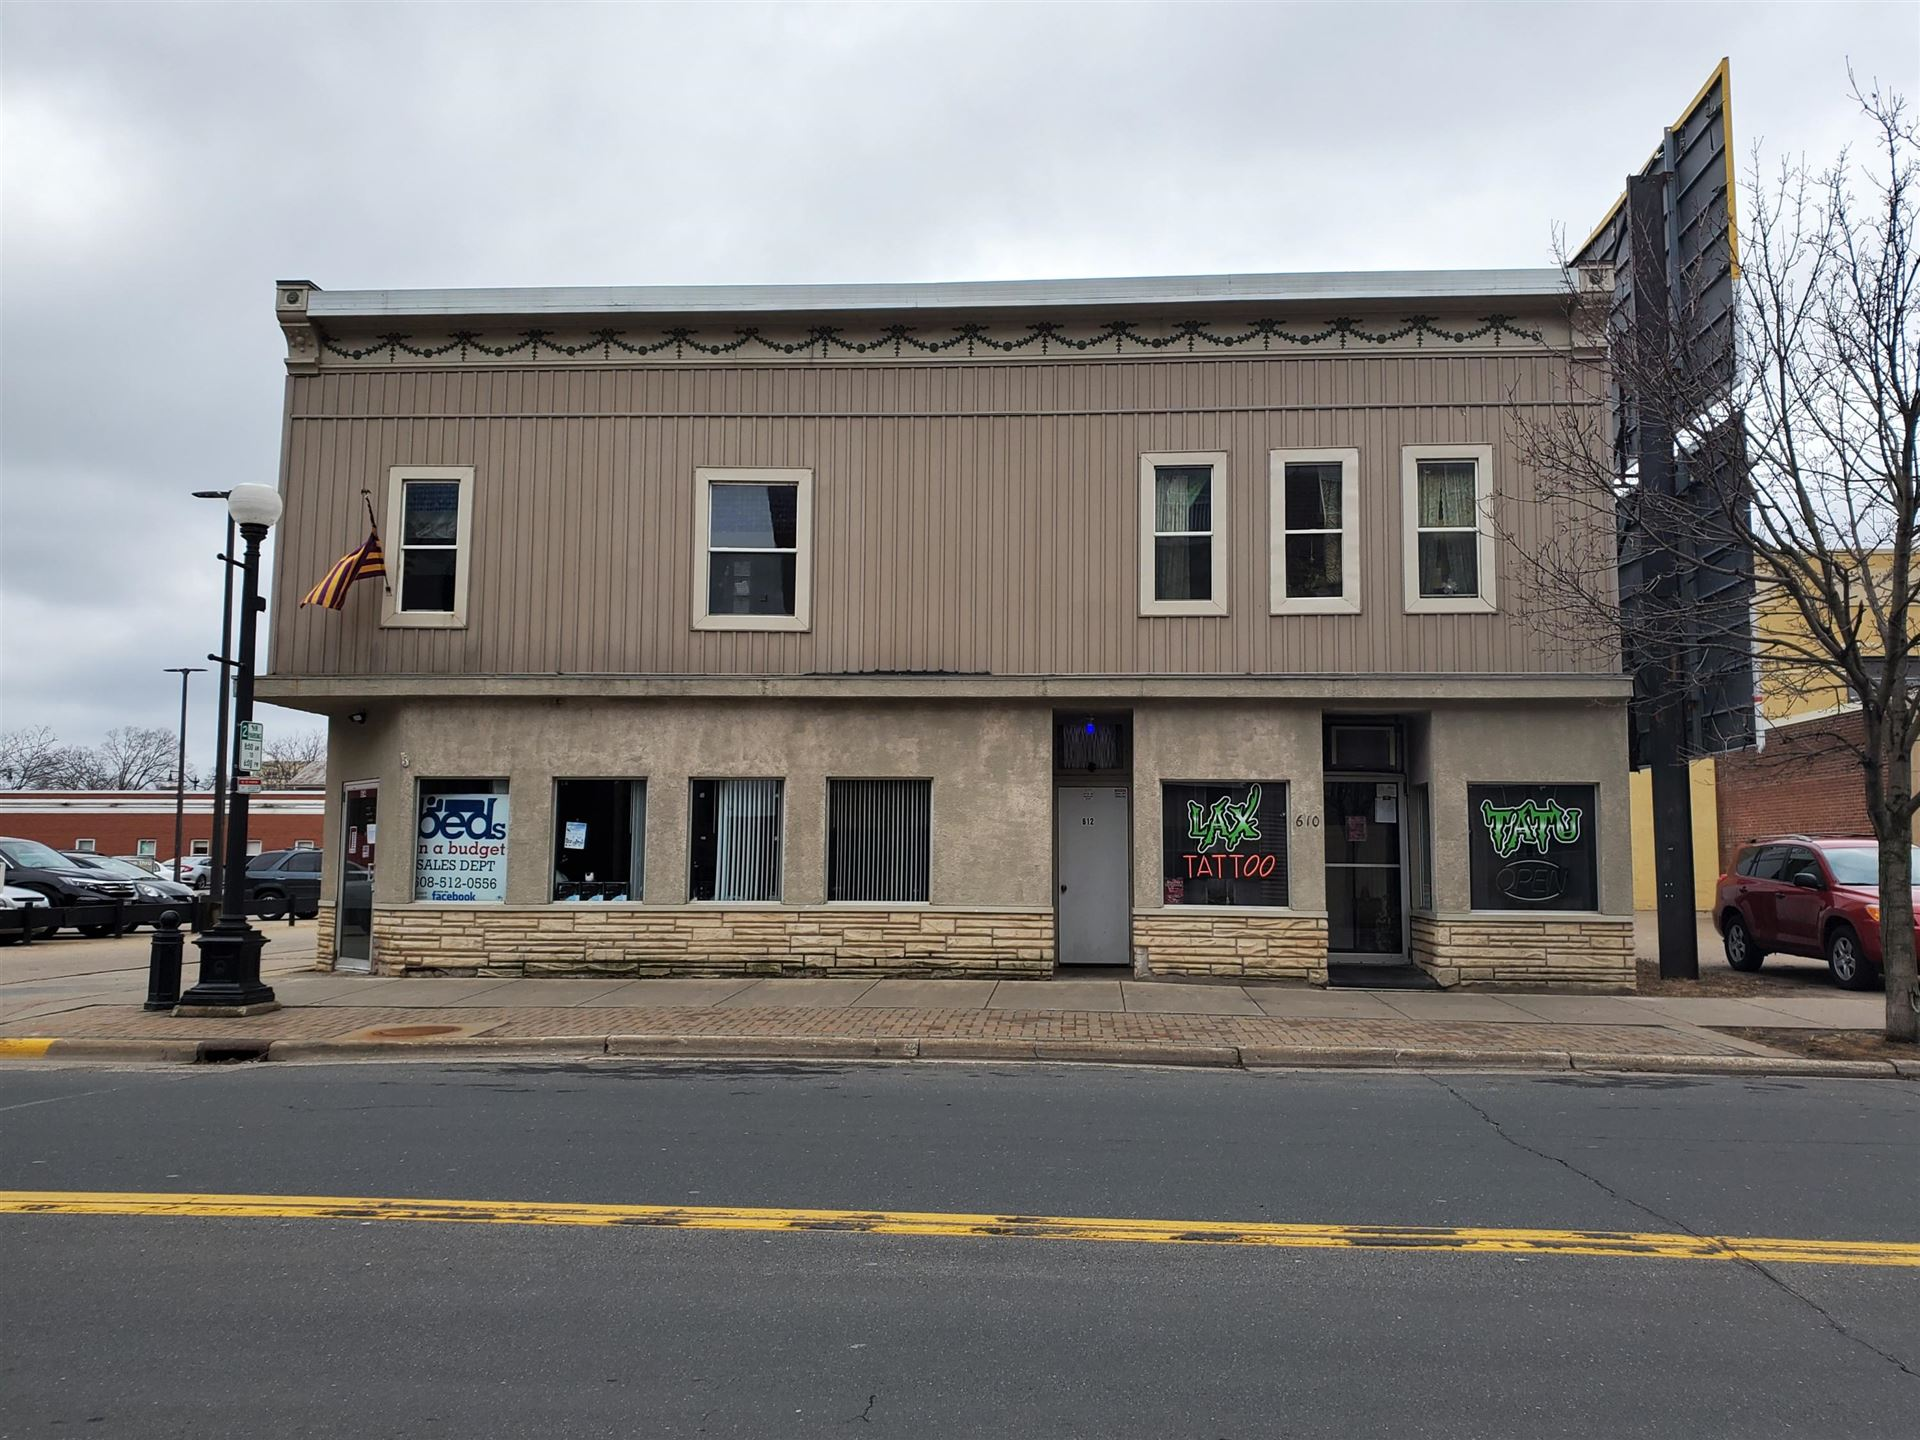 610 Main St, La Crosse, WI 54601 - MLS#: 1680200